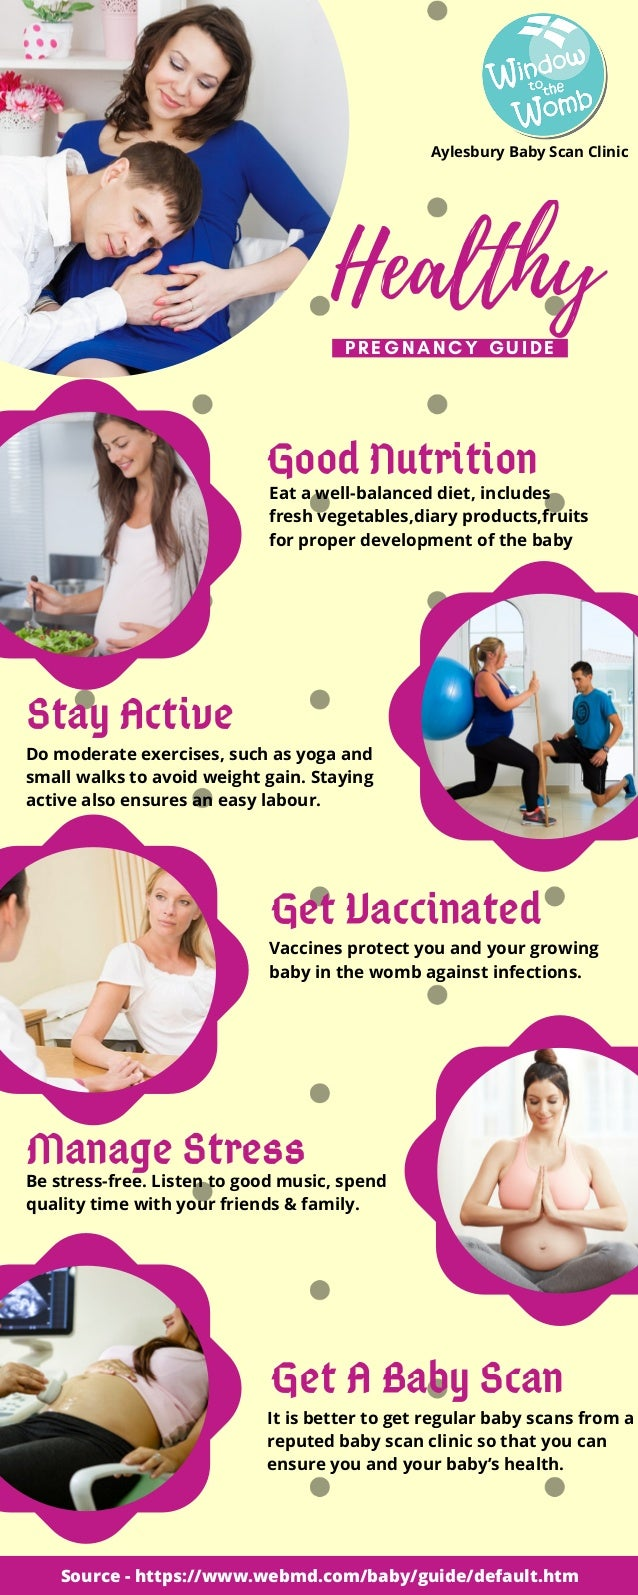 Healthy PREGNANCY GUIDE Aylesbury Baby Scan Clinic Eat a well-balanced diet, includes fresh vegetables,diary products,frui...